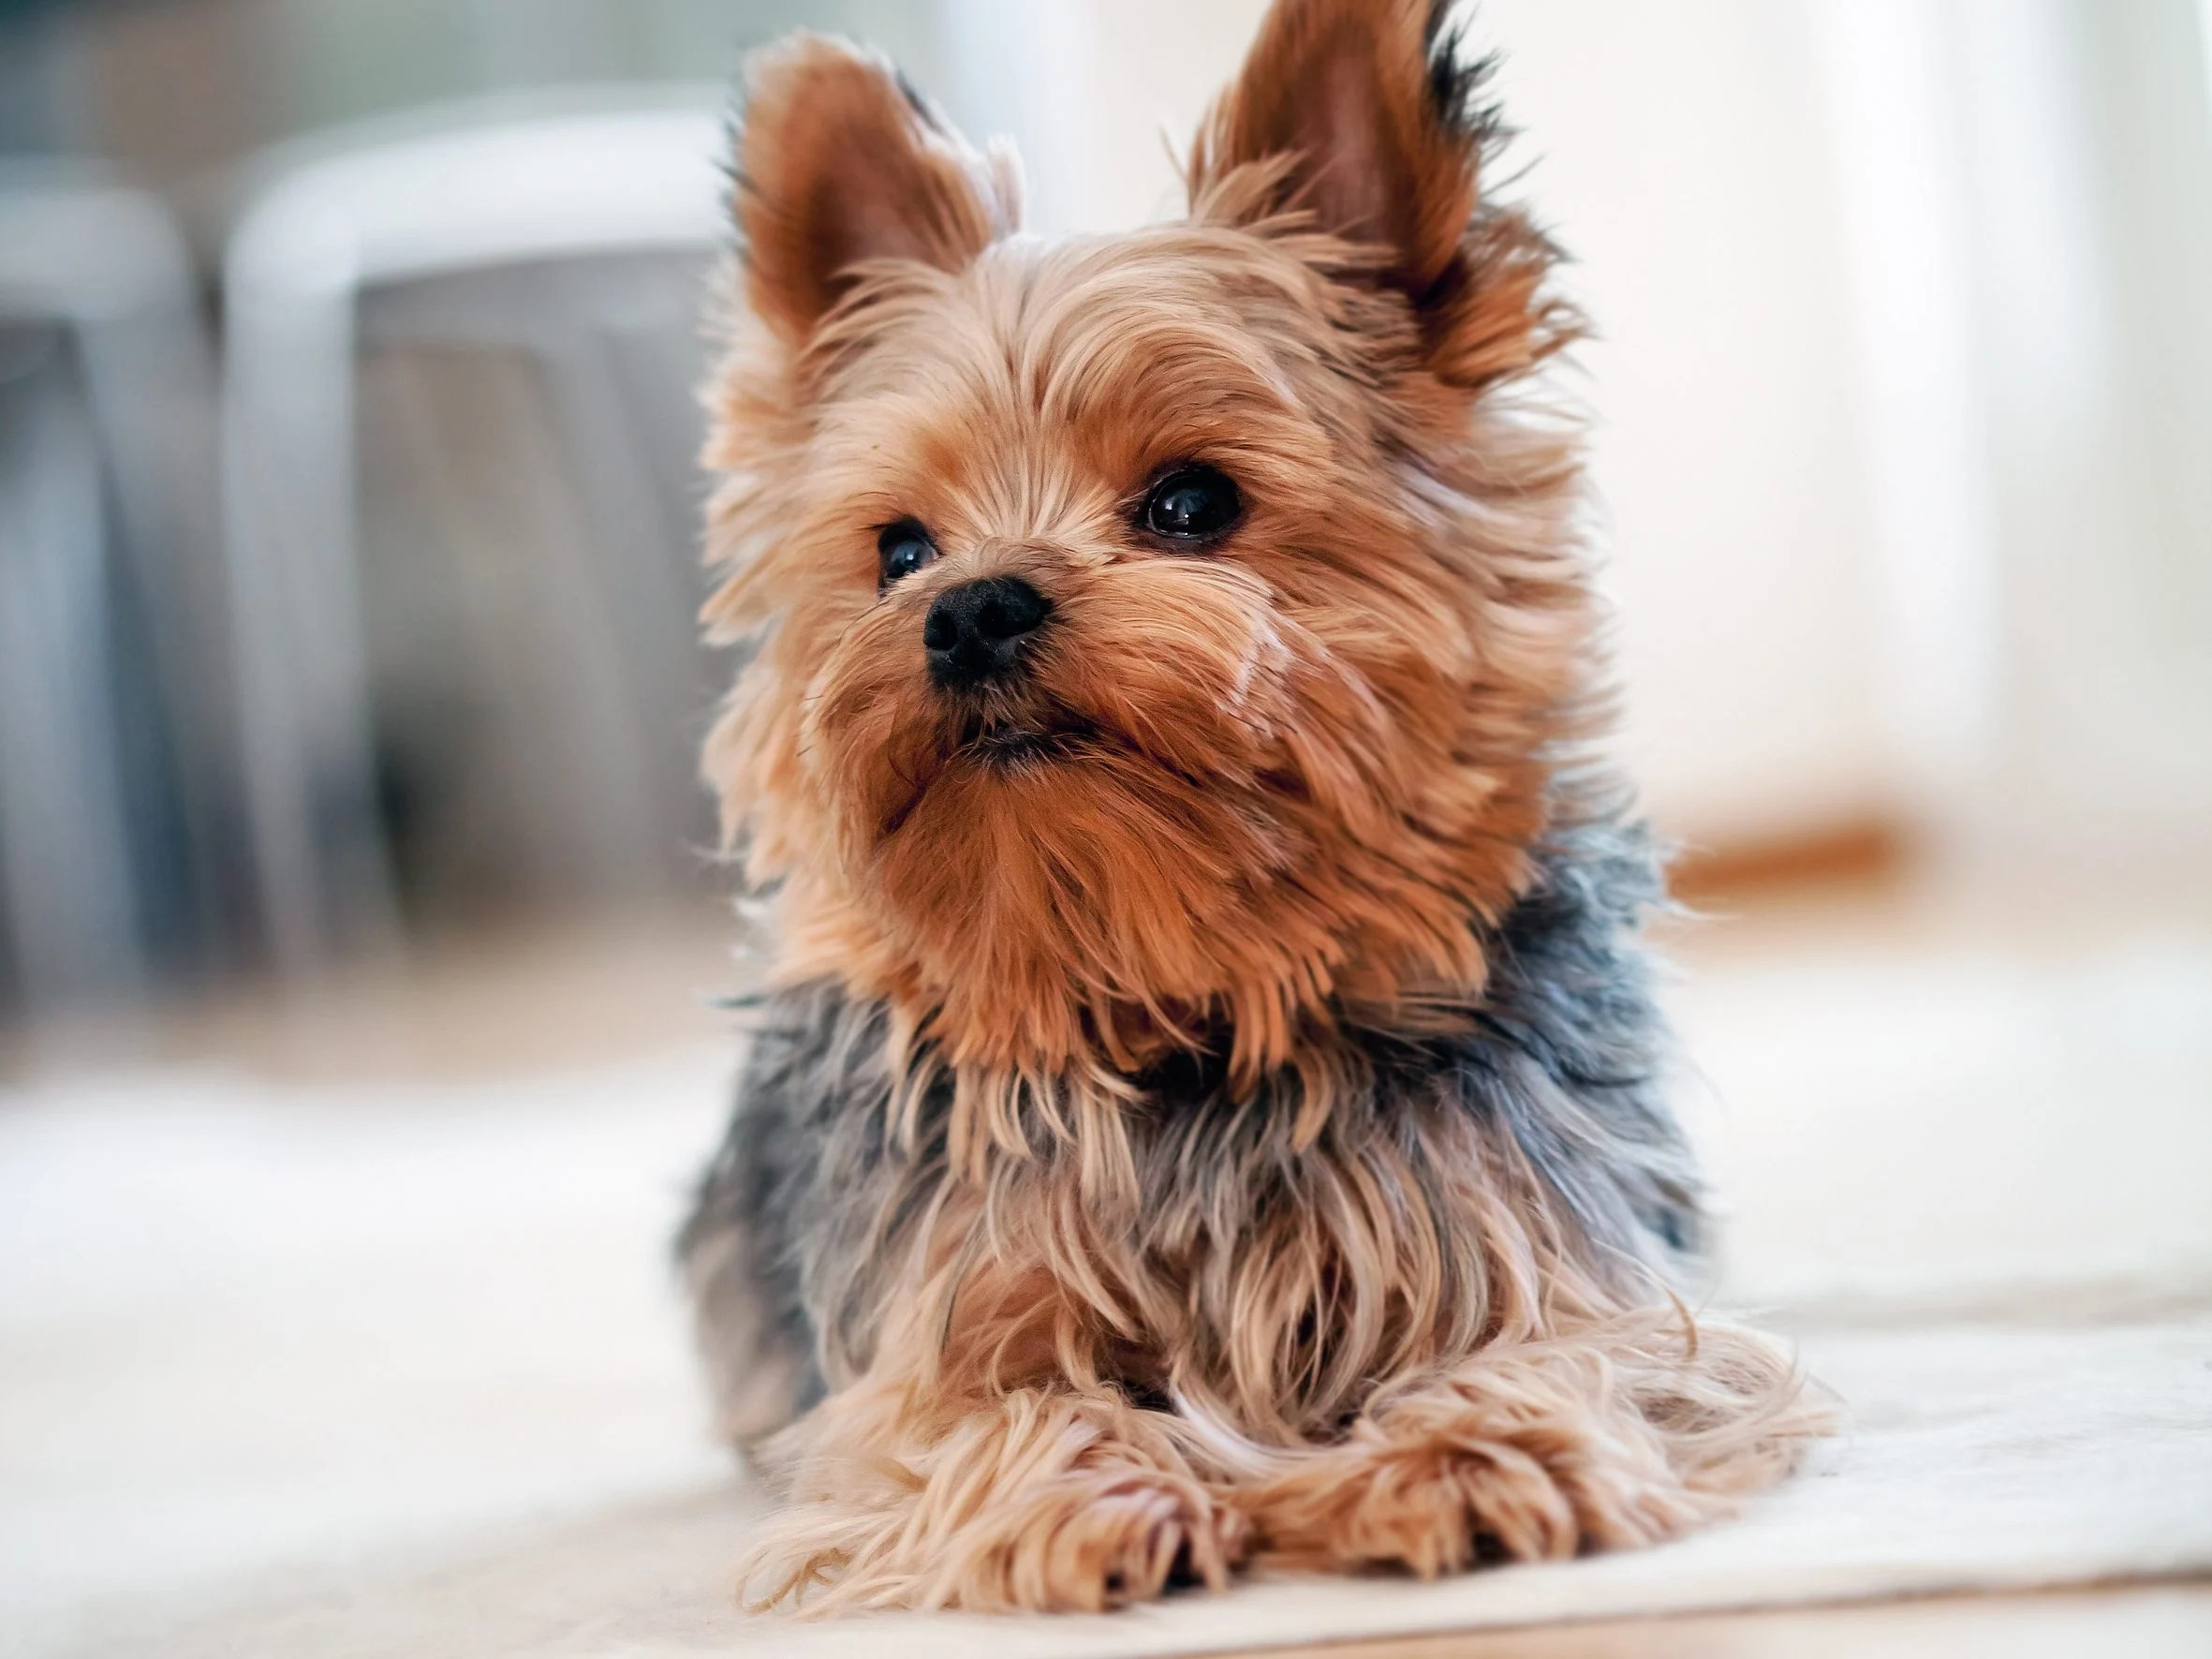 Upscale Apartments Digest Big Dogs Time Owners Dogs Apartment Yorkshire Terrier Dogs Time Owners India bark post Best Dogs For First Time Owners